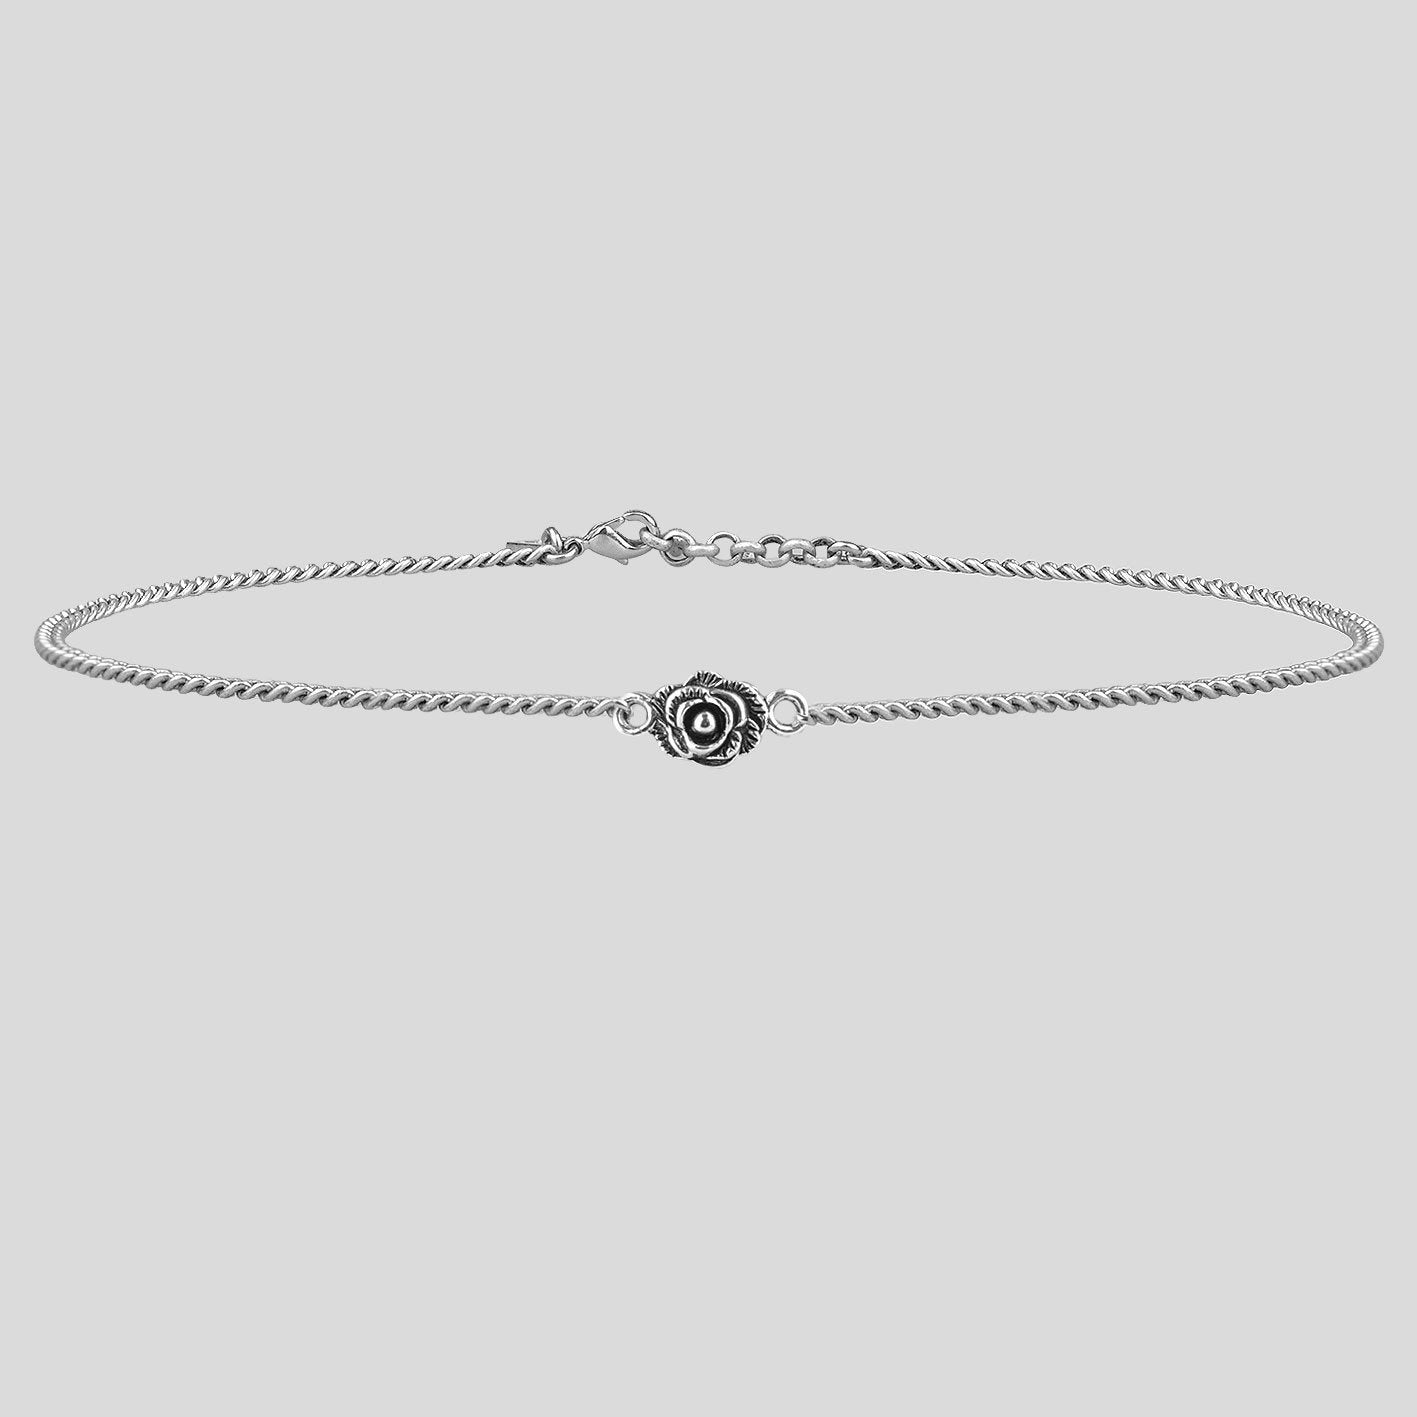 Necklace - MAE. Little Rose Silver Chain Choker